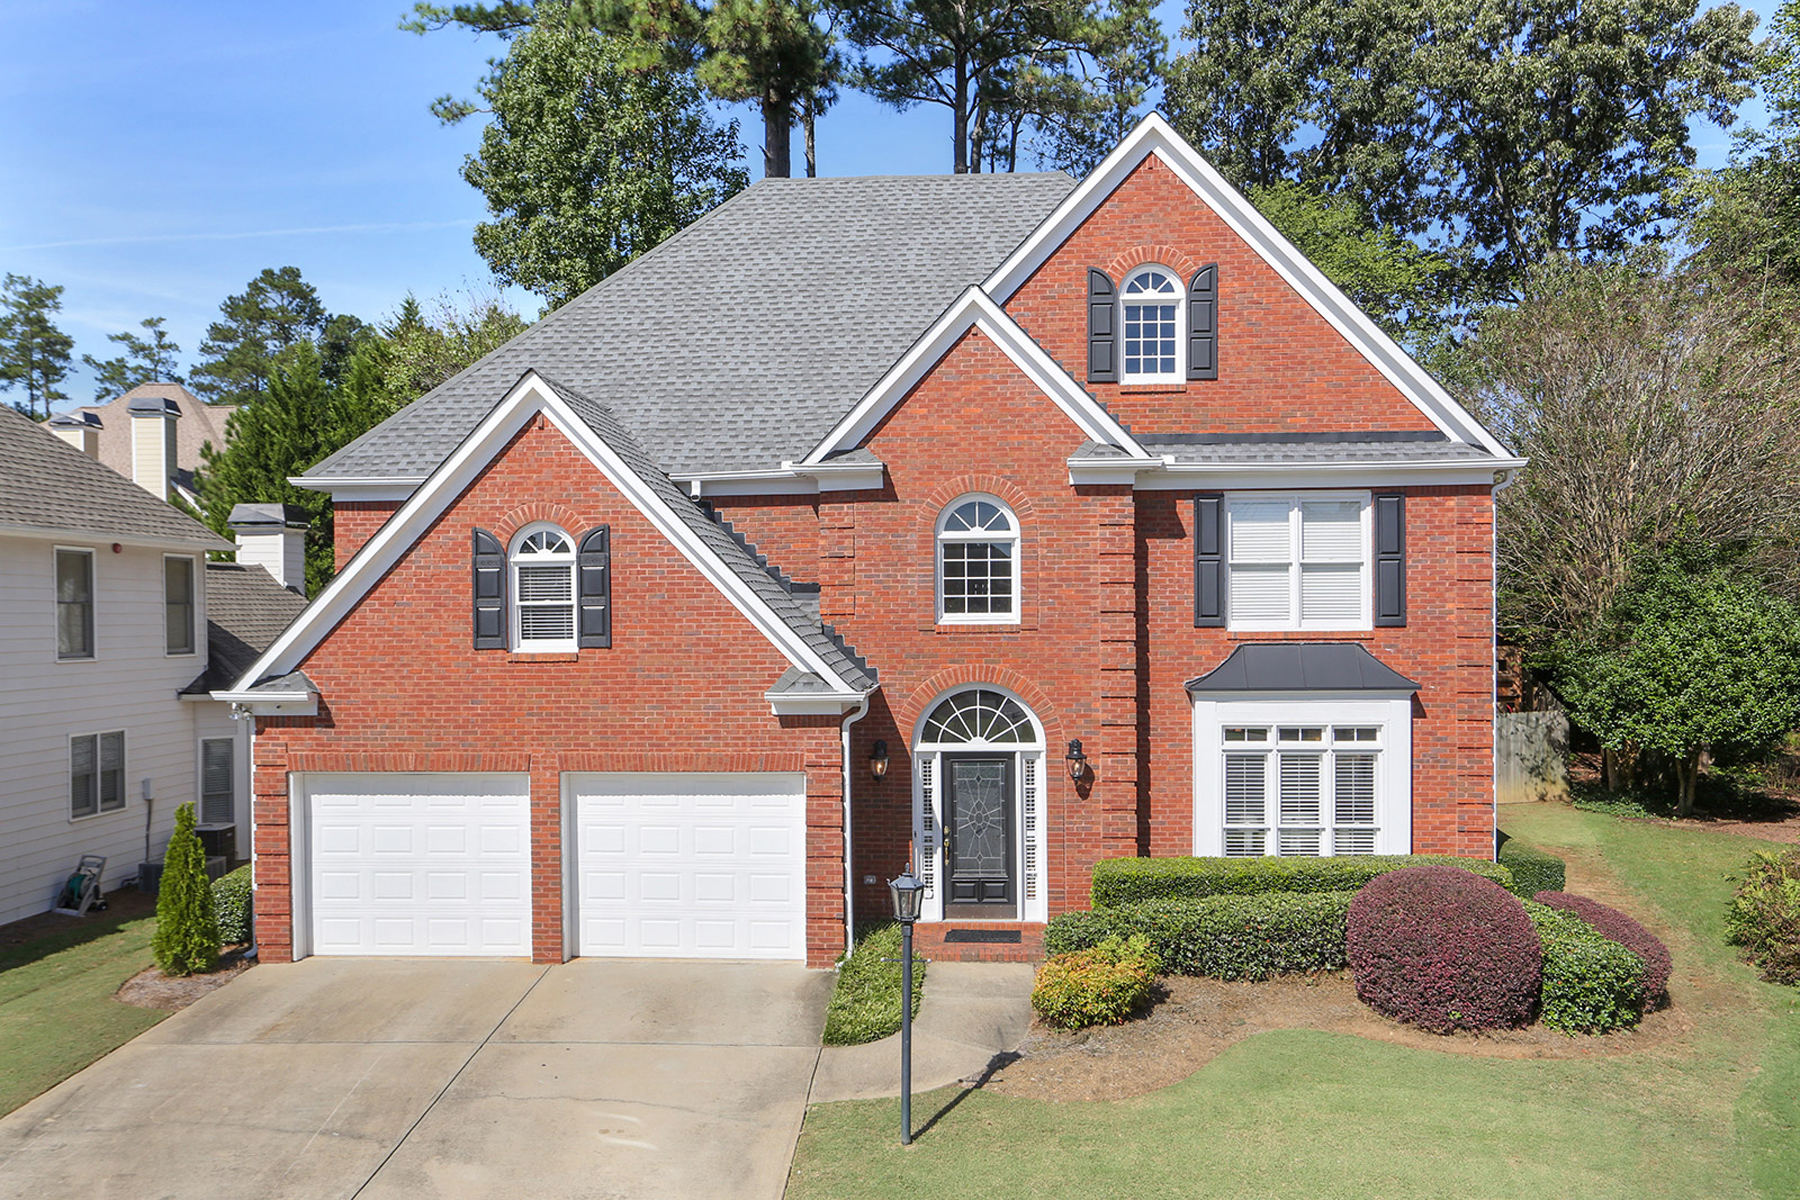 Single Family Home for Sale at Welcome Home 1290 Parkview Ln Kennesaw, Georgia 30064 United States